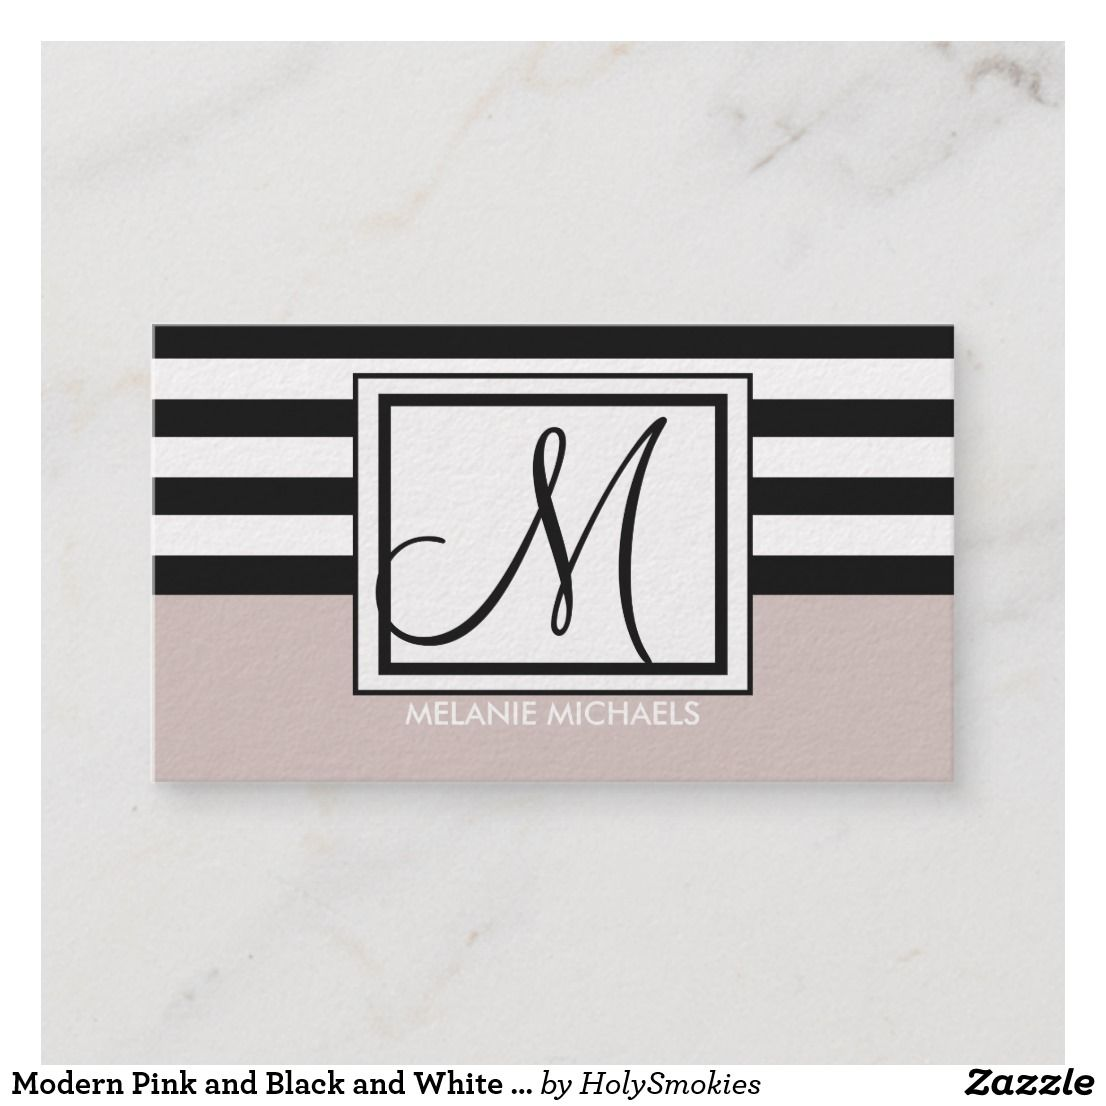 Modern pink and black and white stripes monogram business